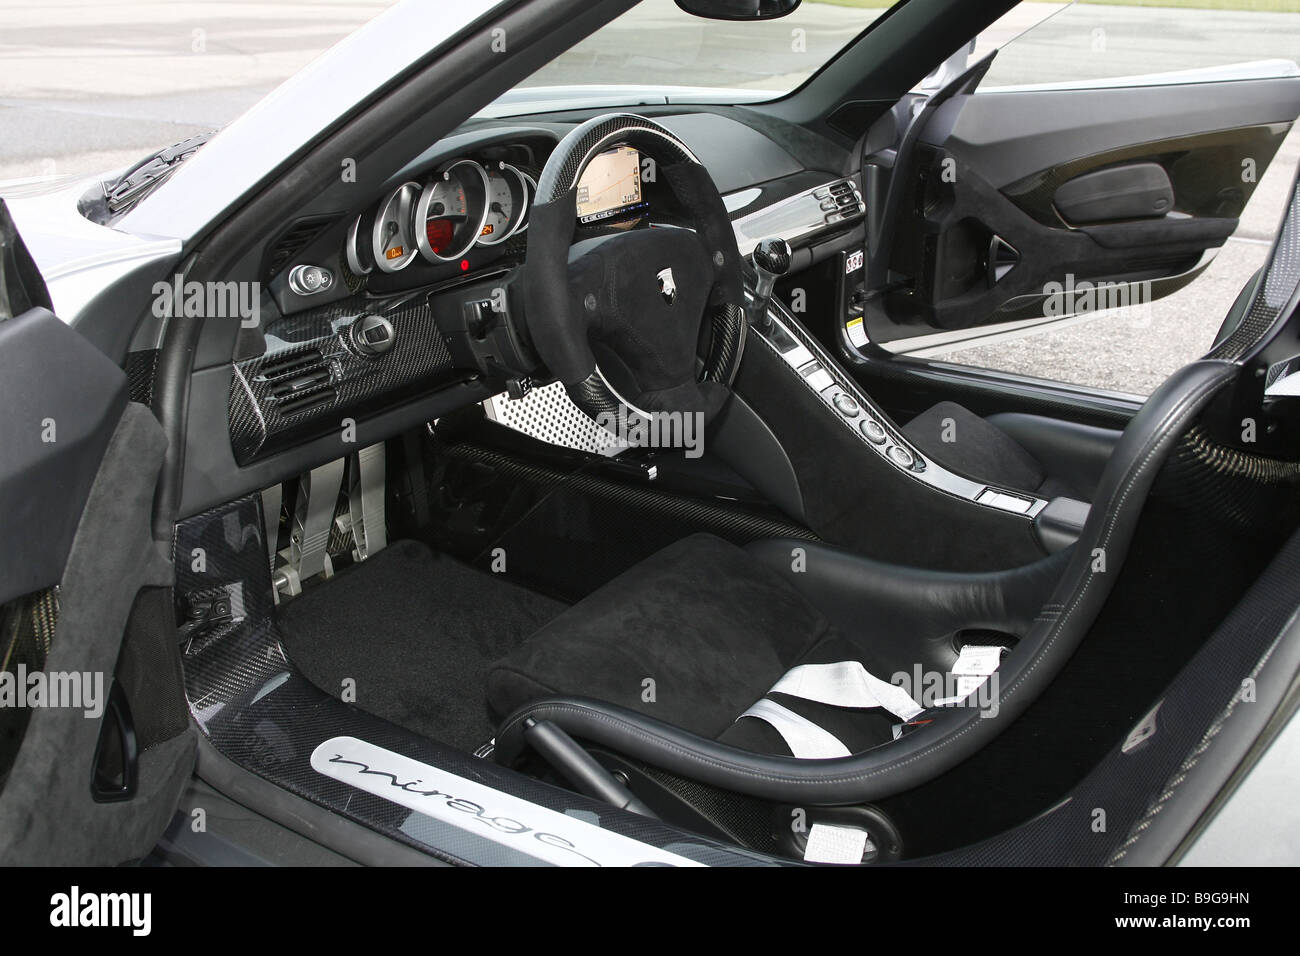 porsche gemballa mirage cockpit series vehicle car sport. Black Bedroom Furniture Sets. Home Design Ideas